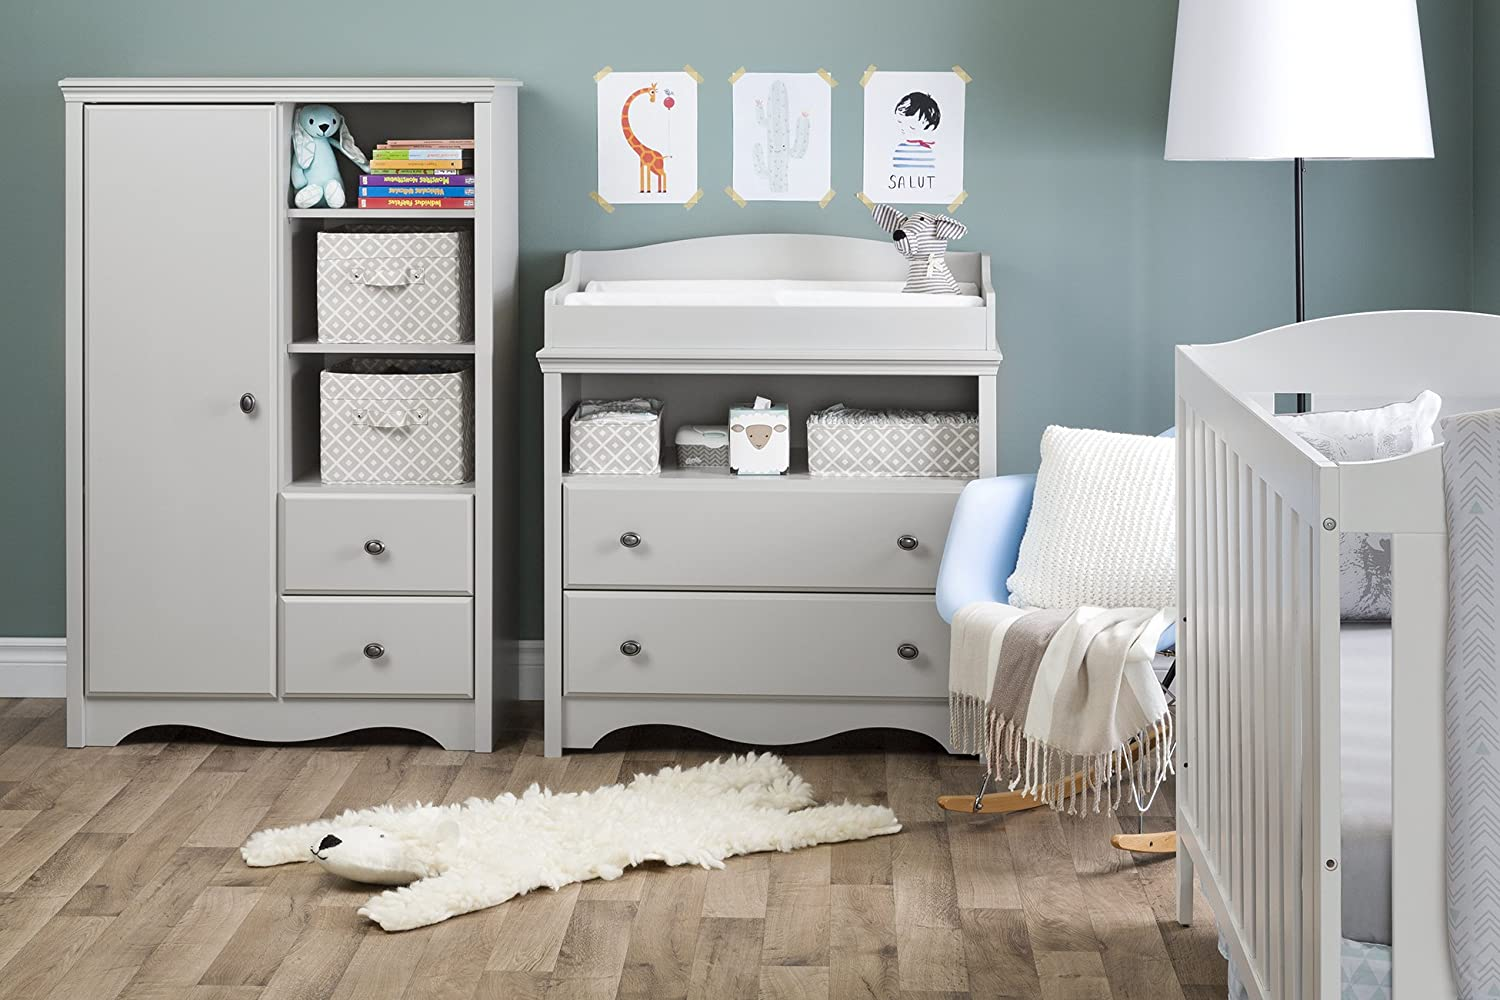 Soft Gray South Shore Angel Changing Table with Drawers